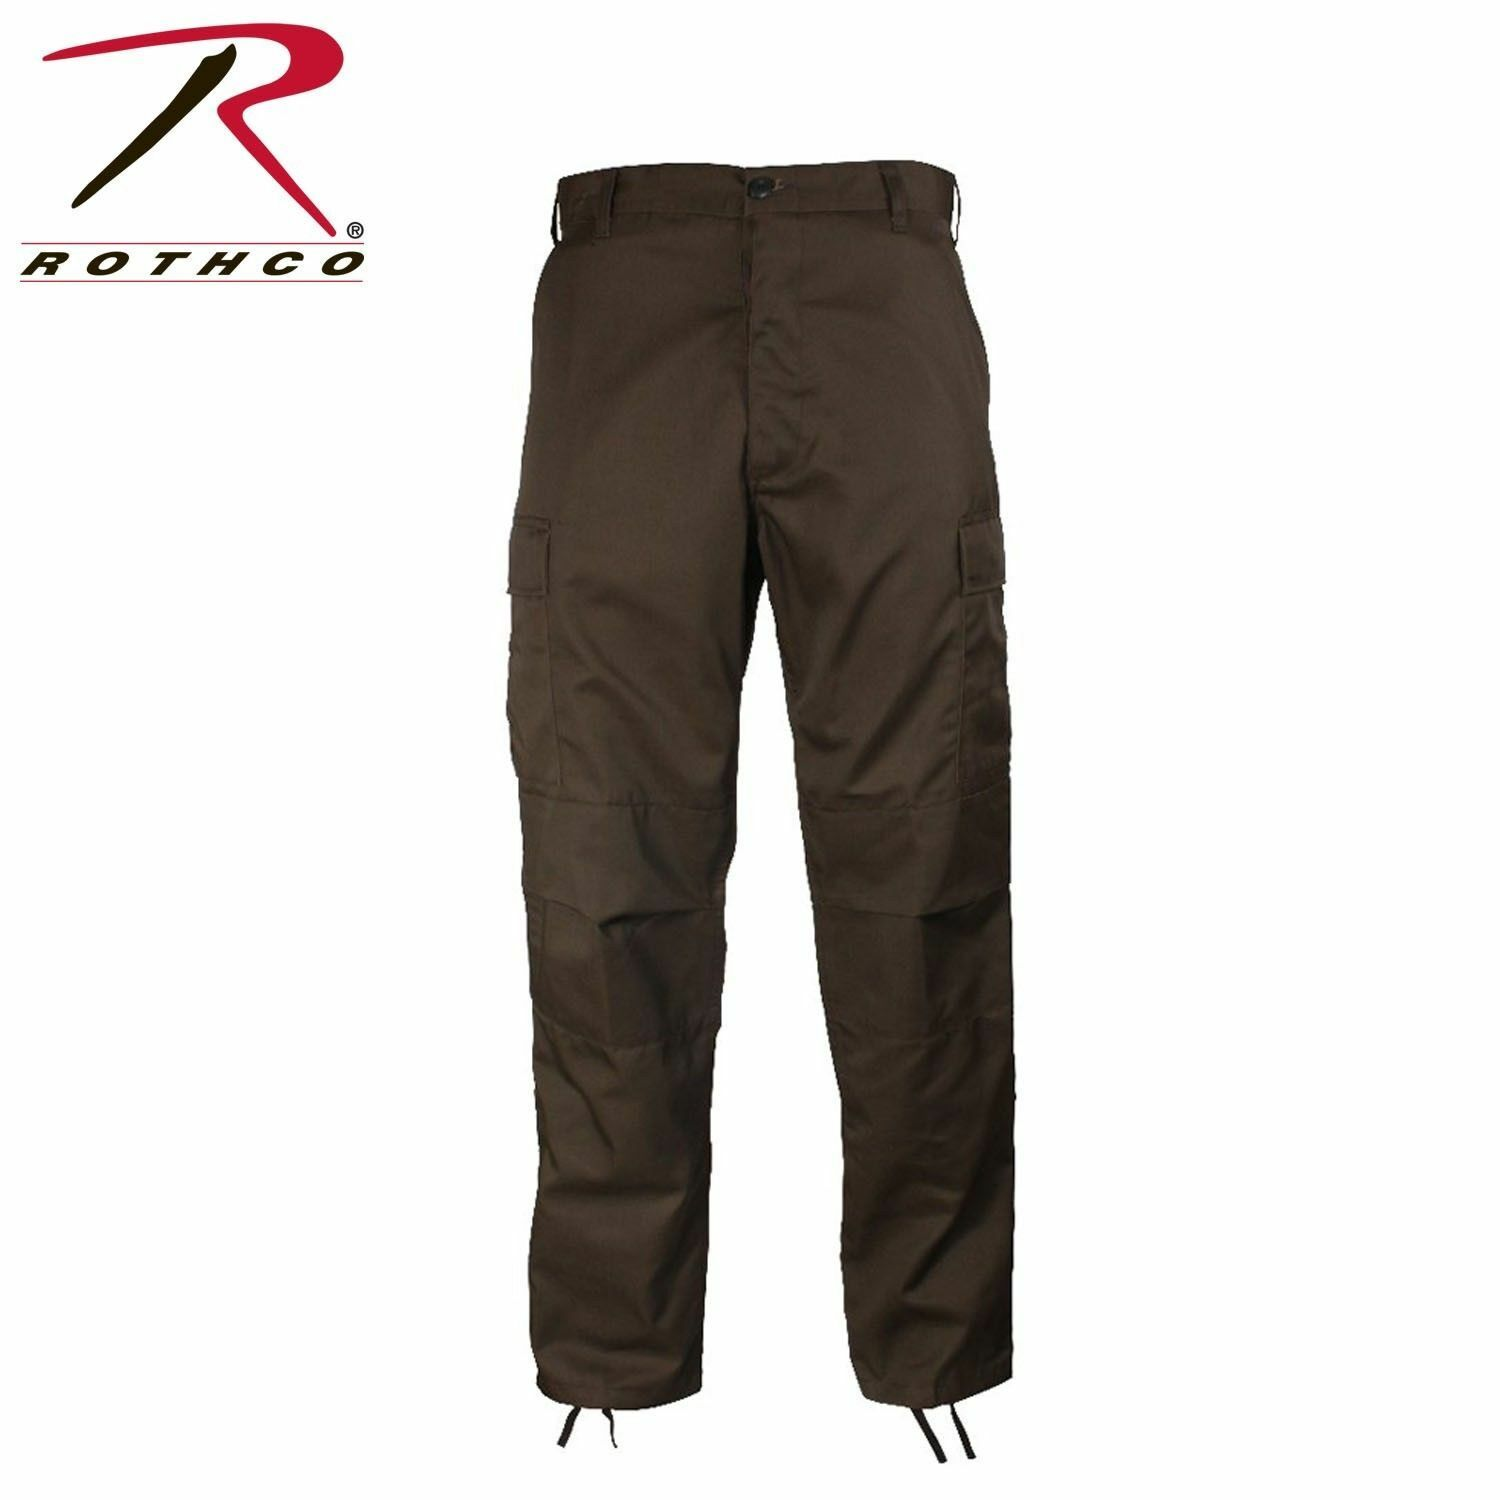 redhco BROWN Military Fatigue Solid BDU PANTS CARGO SIZES  S M L XL 2X 3X